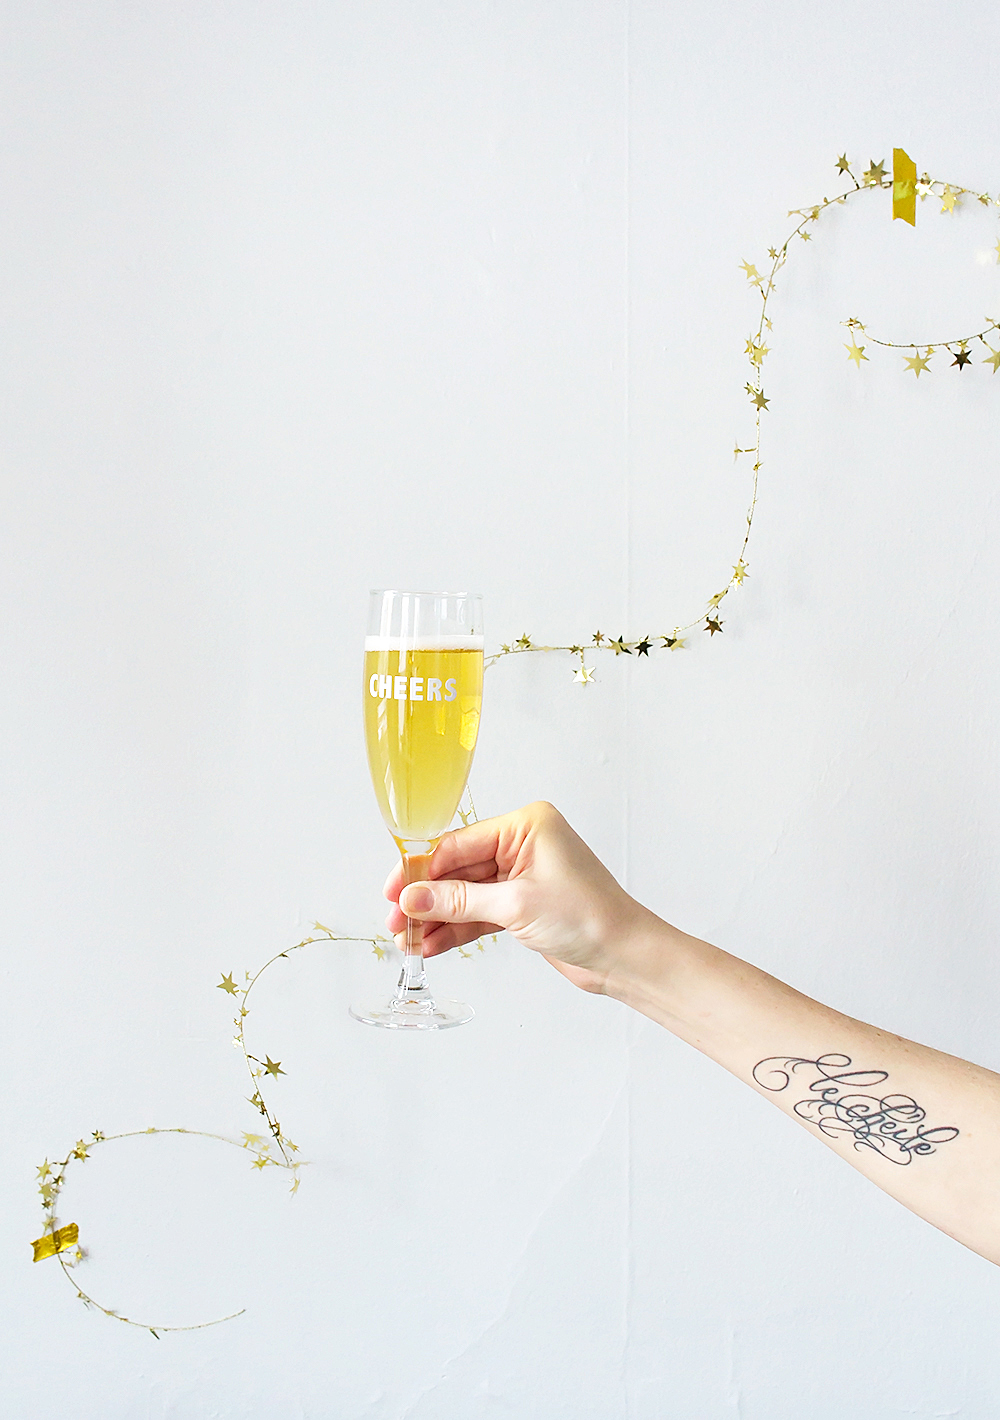 Get festive with this 5 minute New Year's Eve party hack. These DIY Cheers Champagne Flutes are super quick, and all you need are stickers!